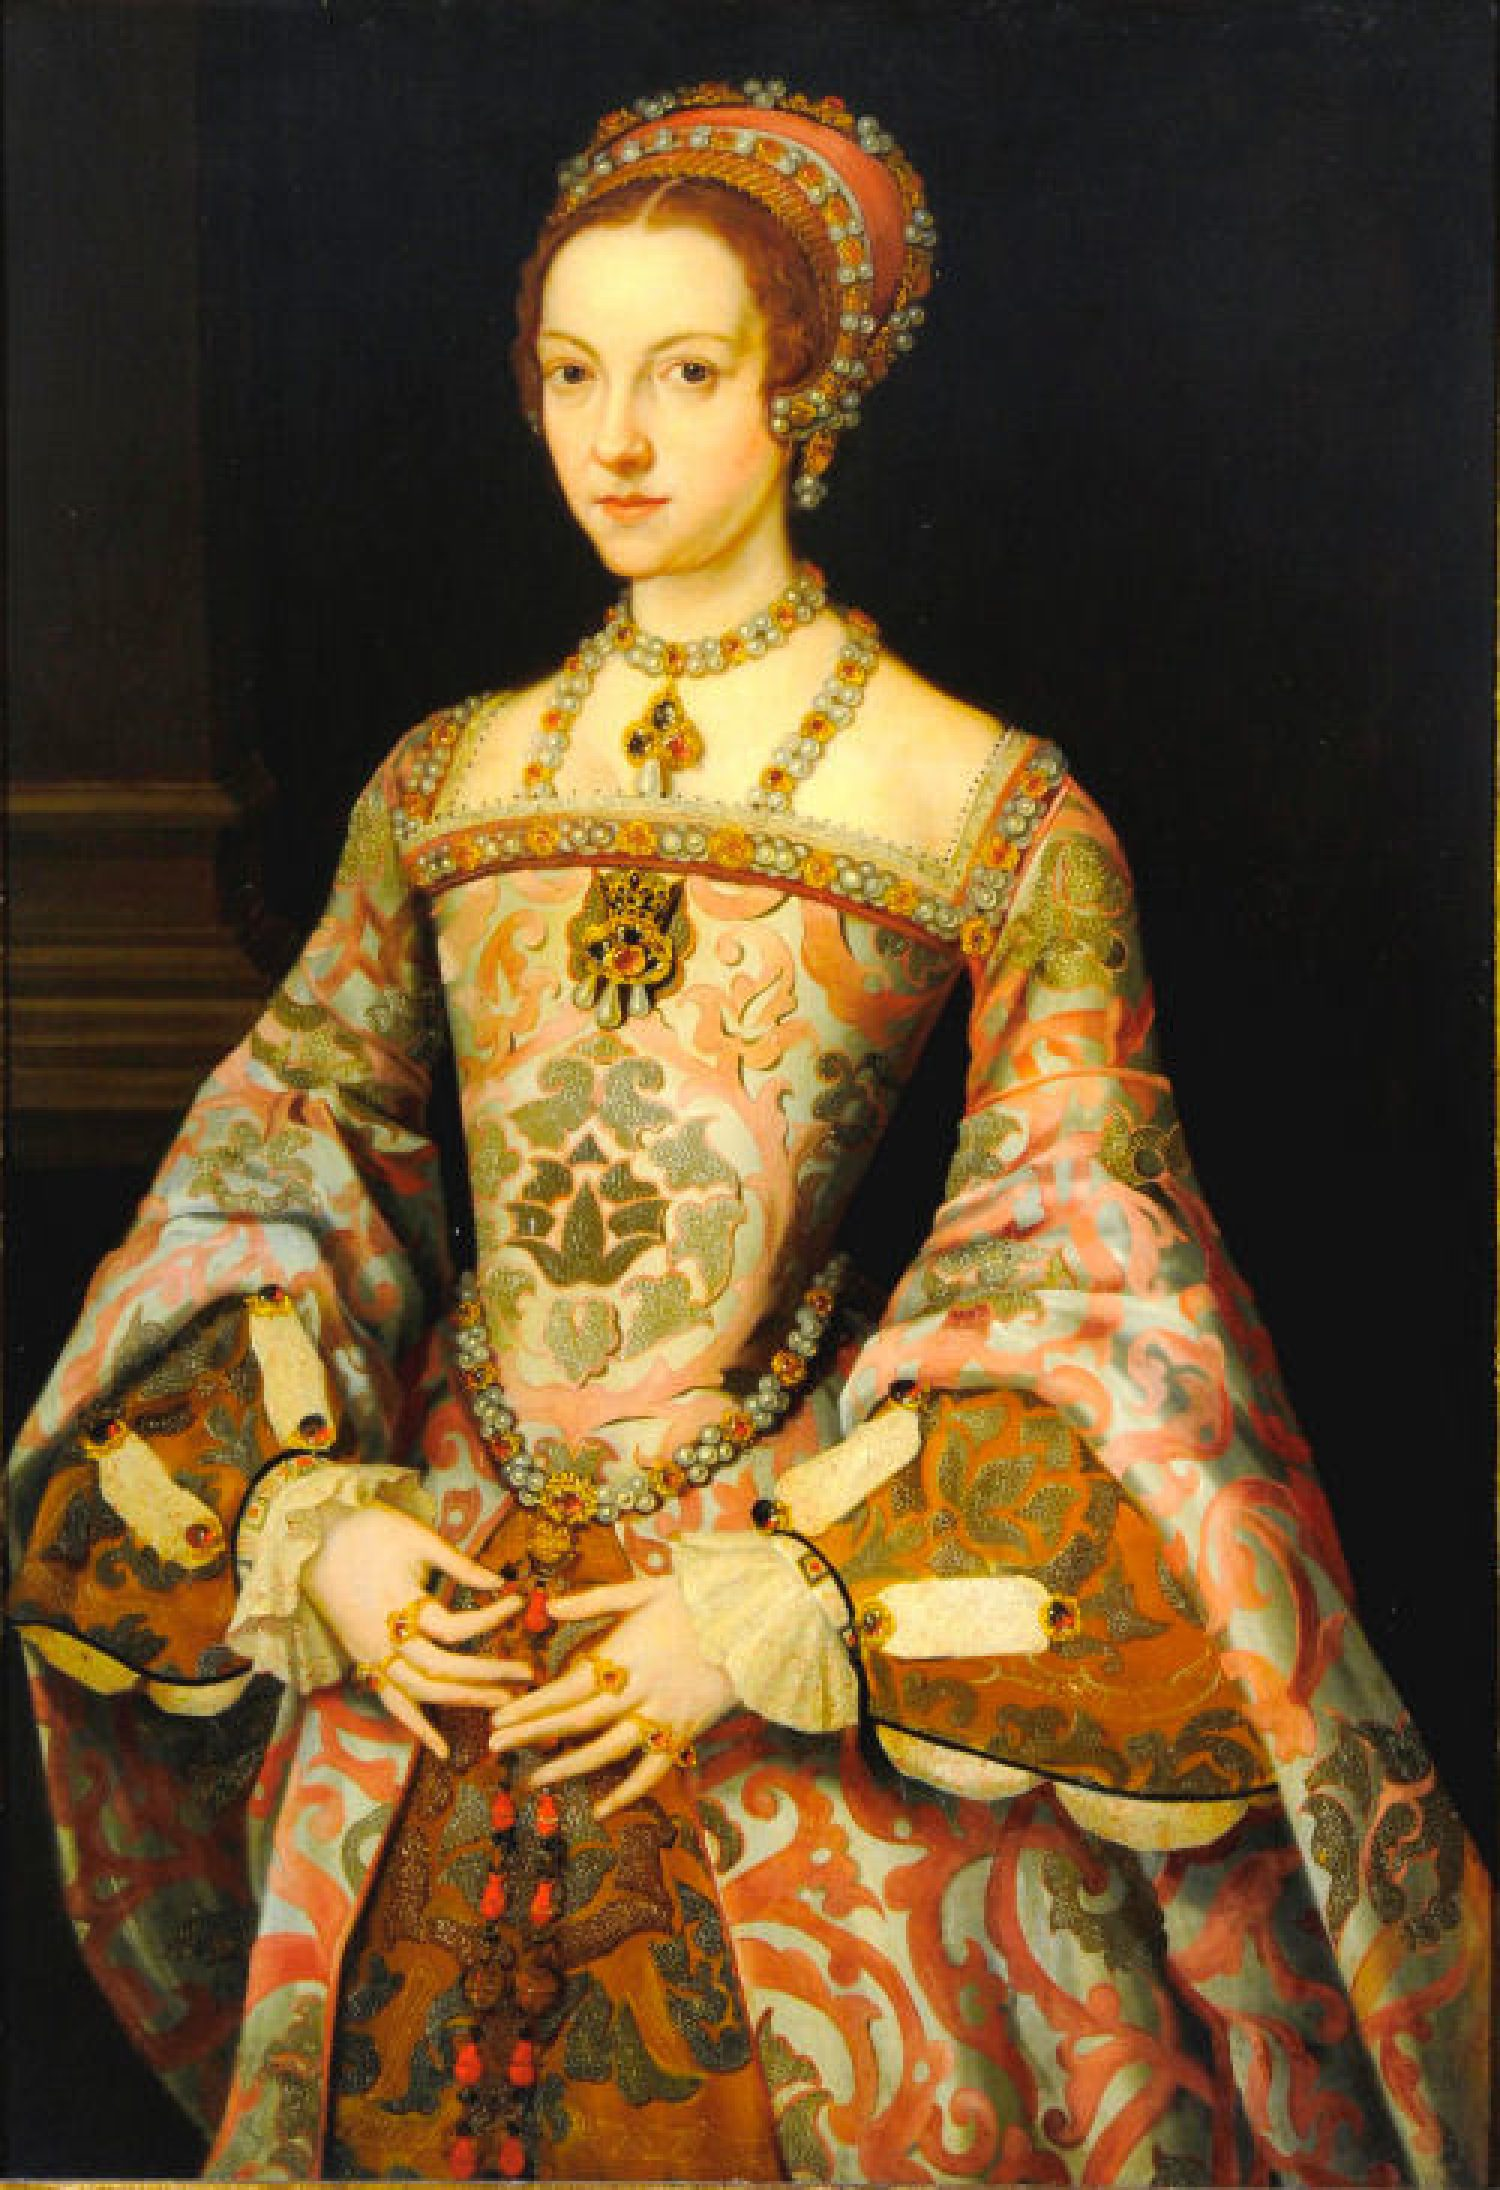 Full body portrait of Katherine Parr